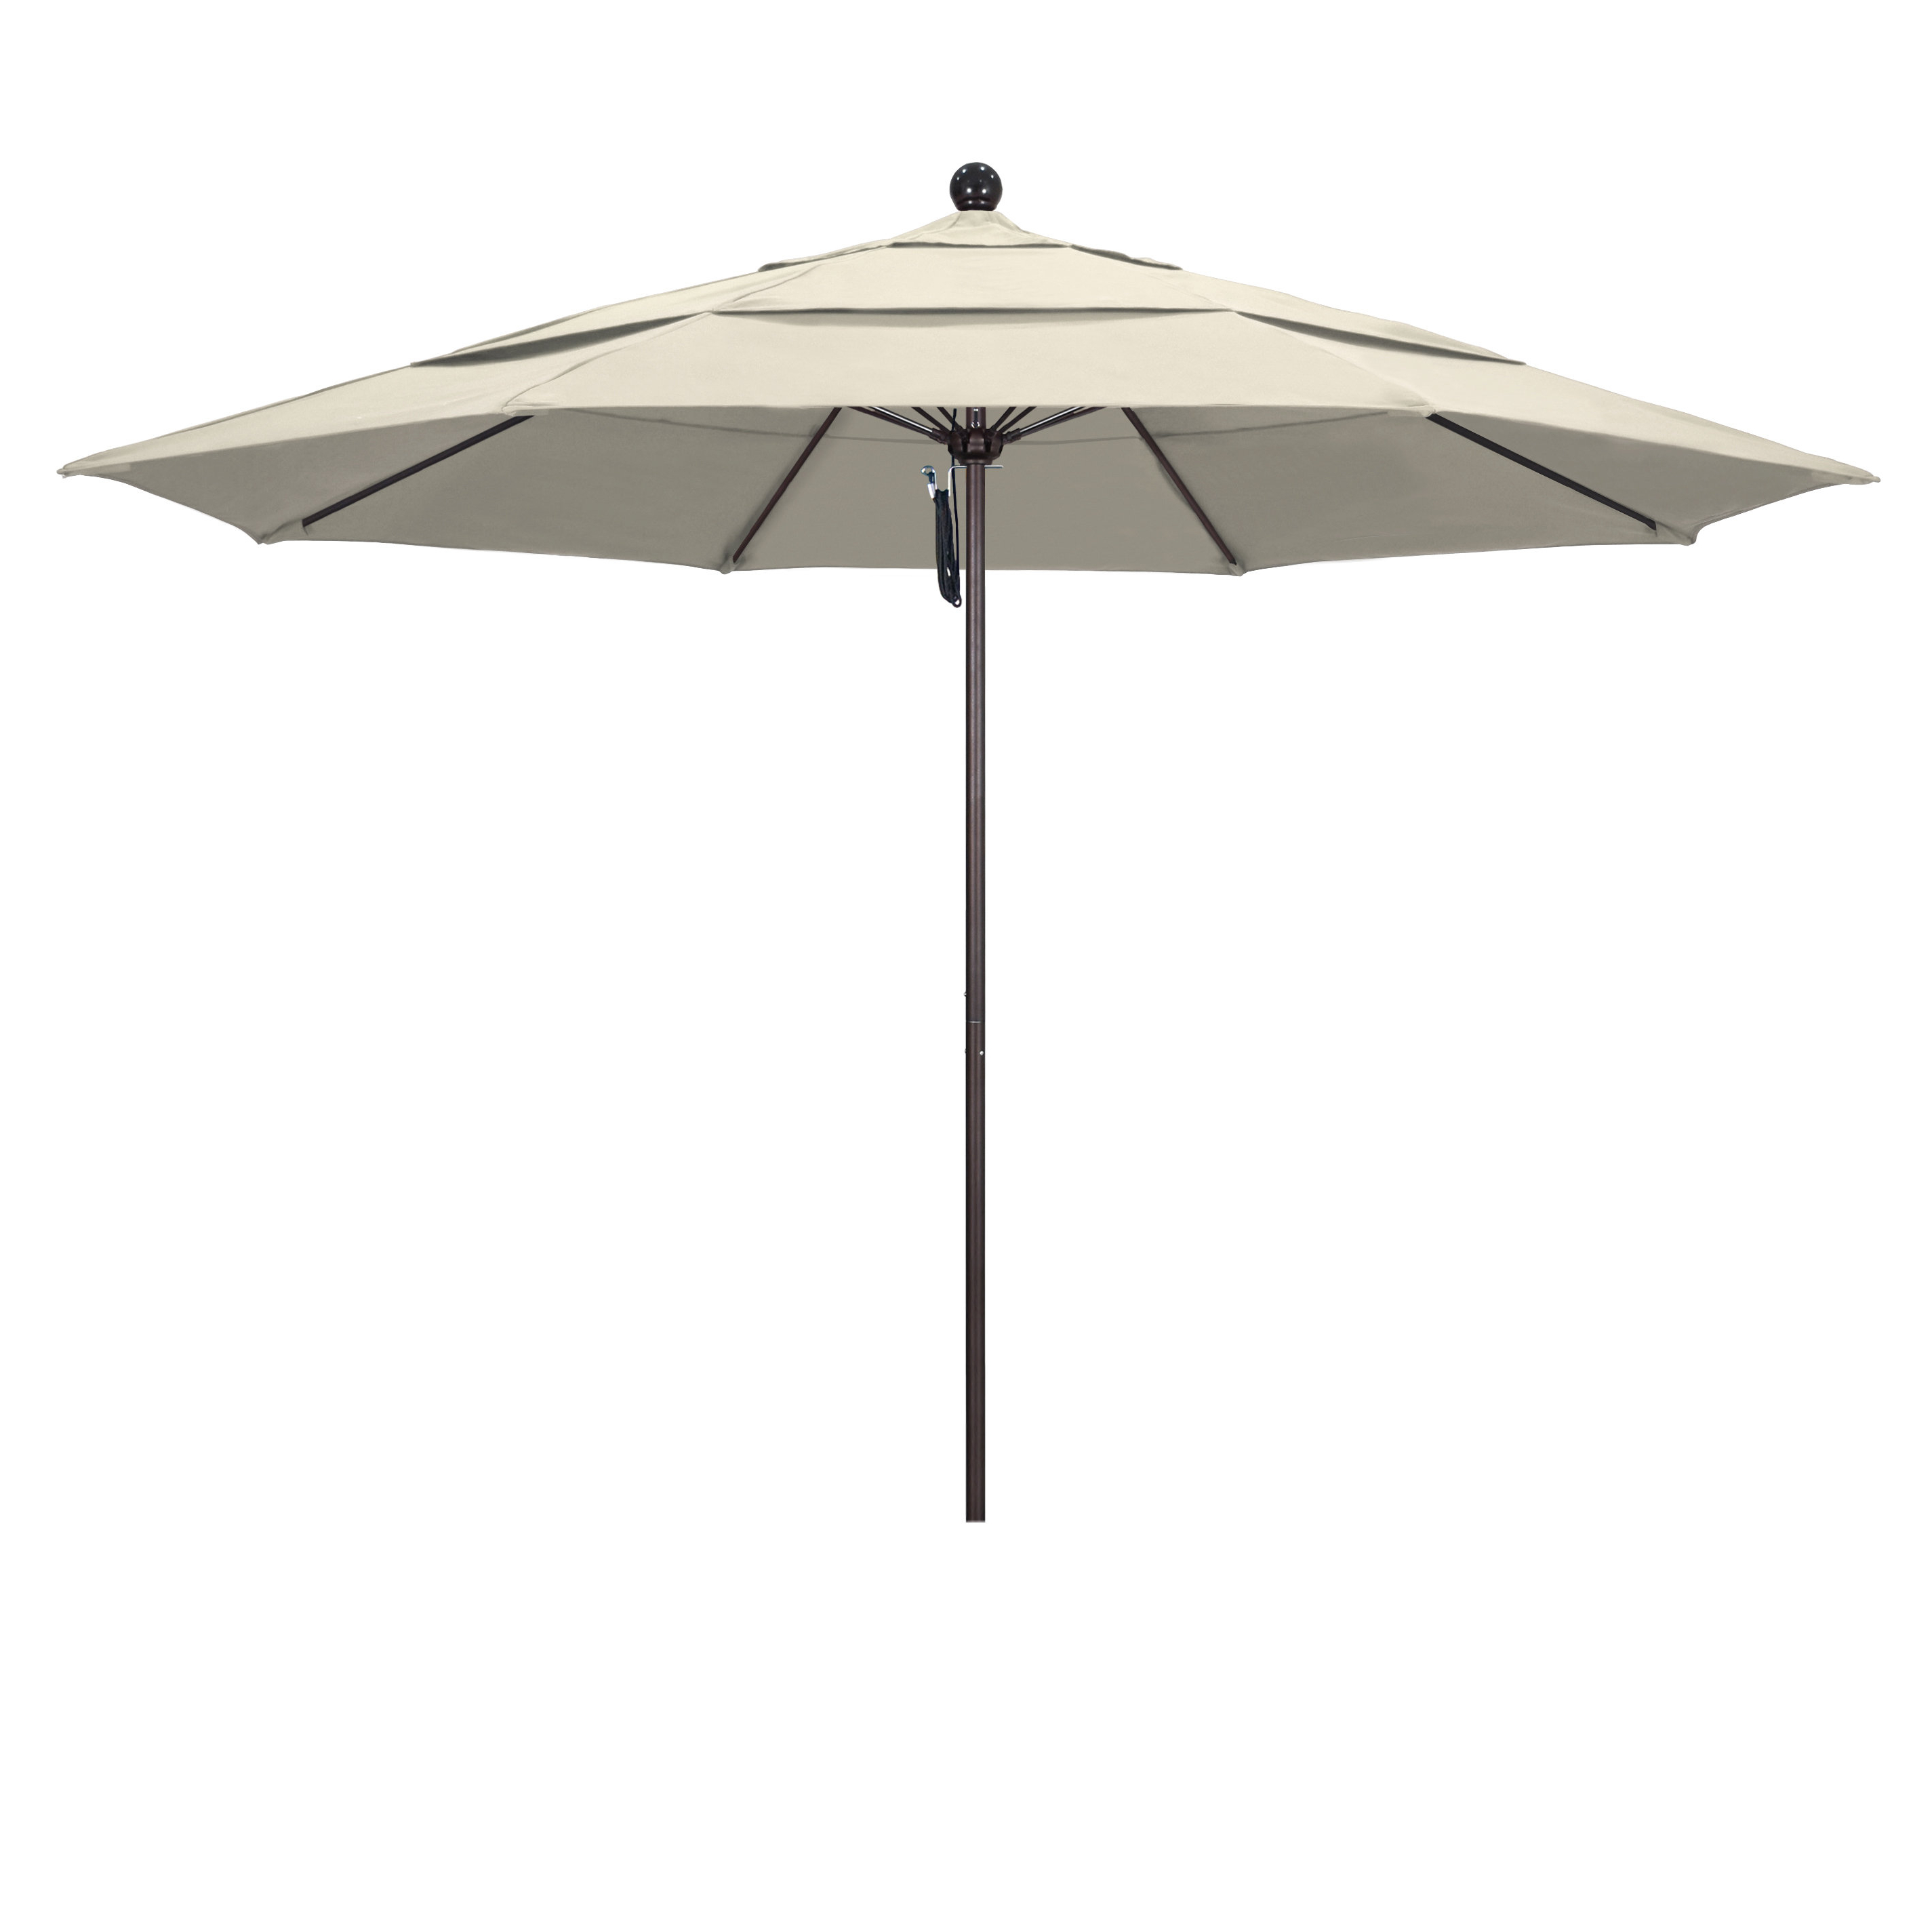 Recent Mucci Madilyn Market Sunbrella Umbrellas With Regard To Sol 72 Outdoor Duxbury 11' Market Umbrella (View 15 of 20)